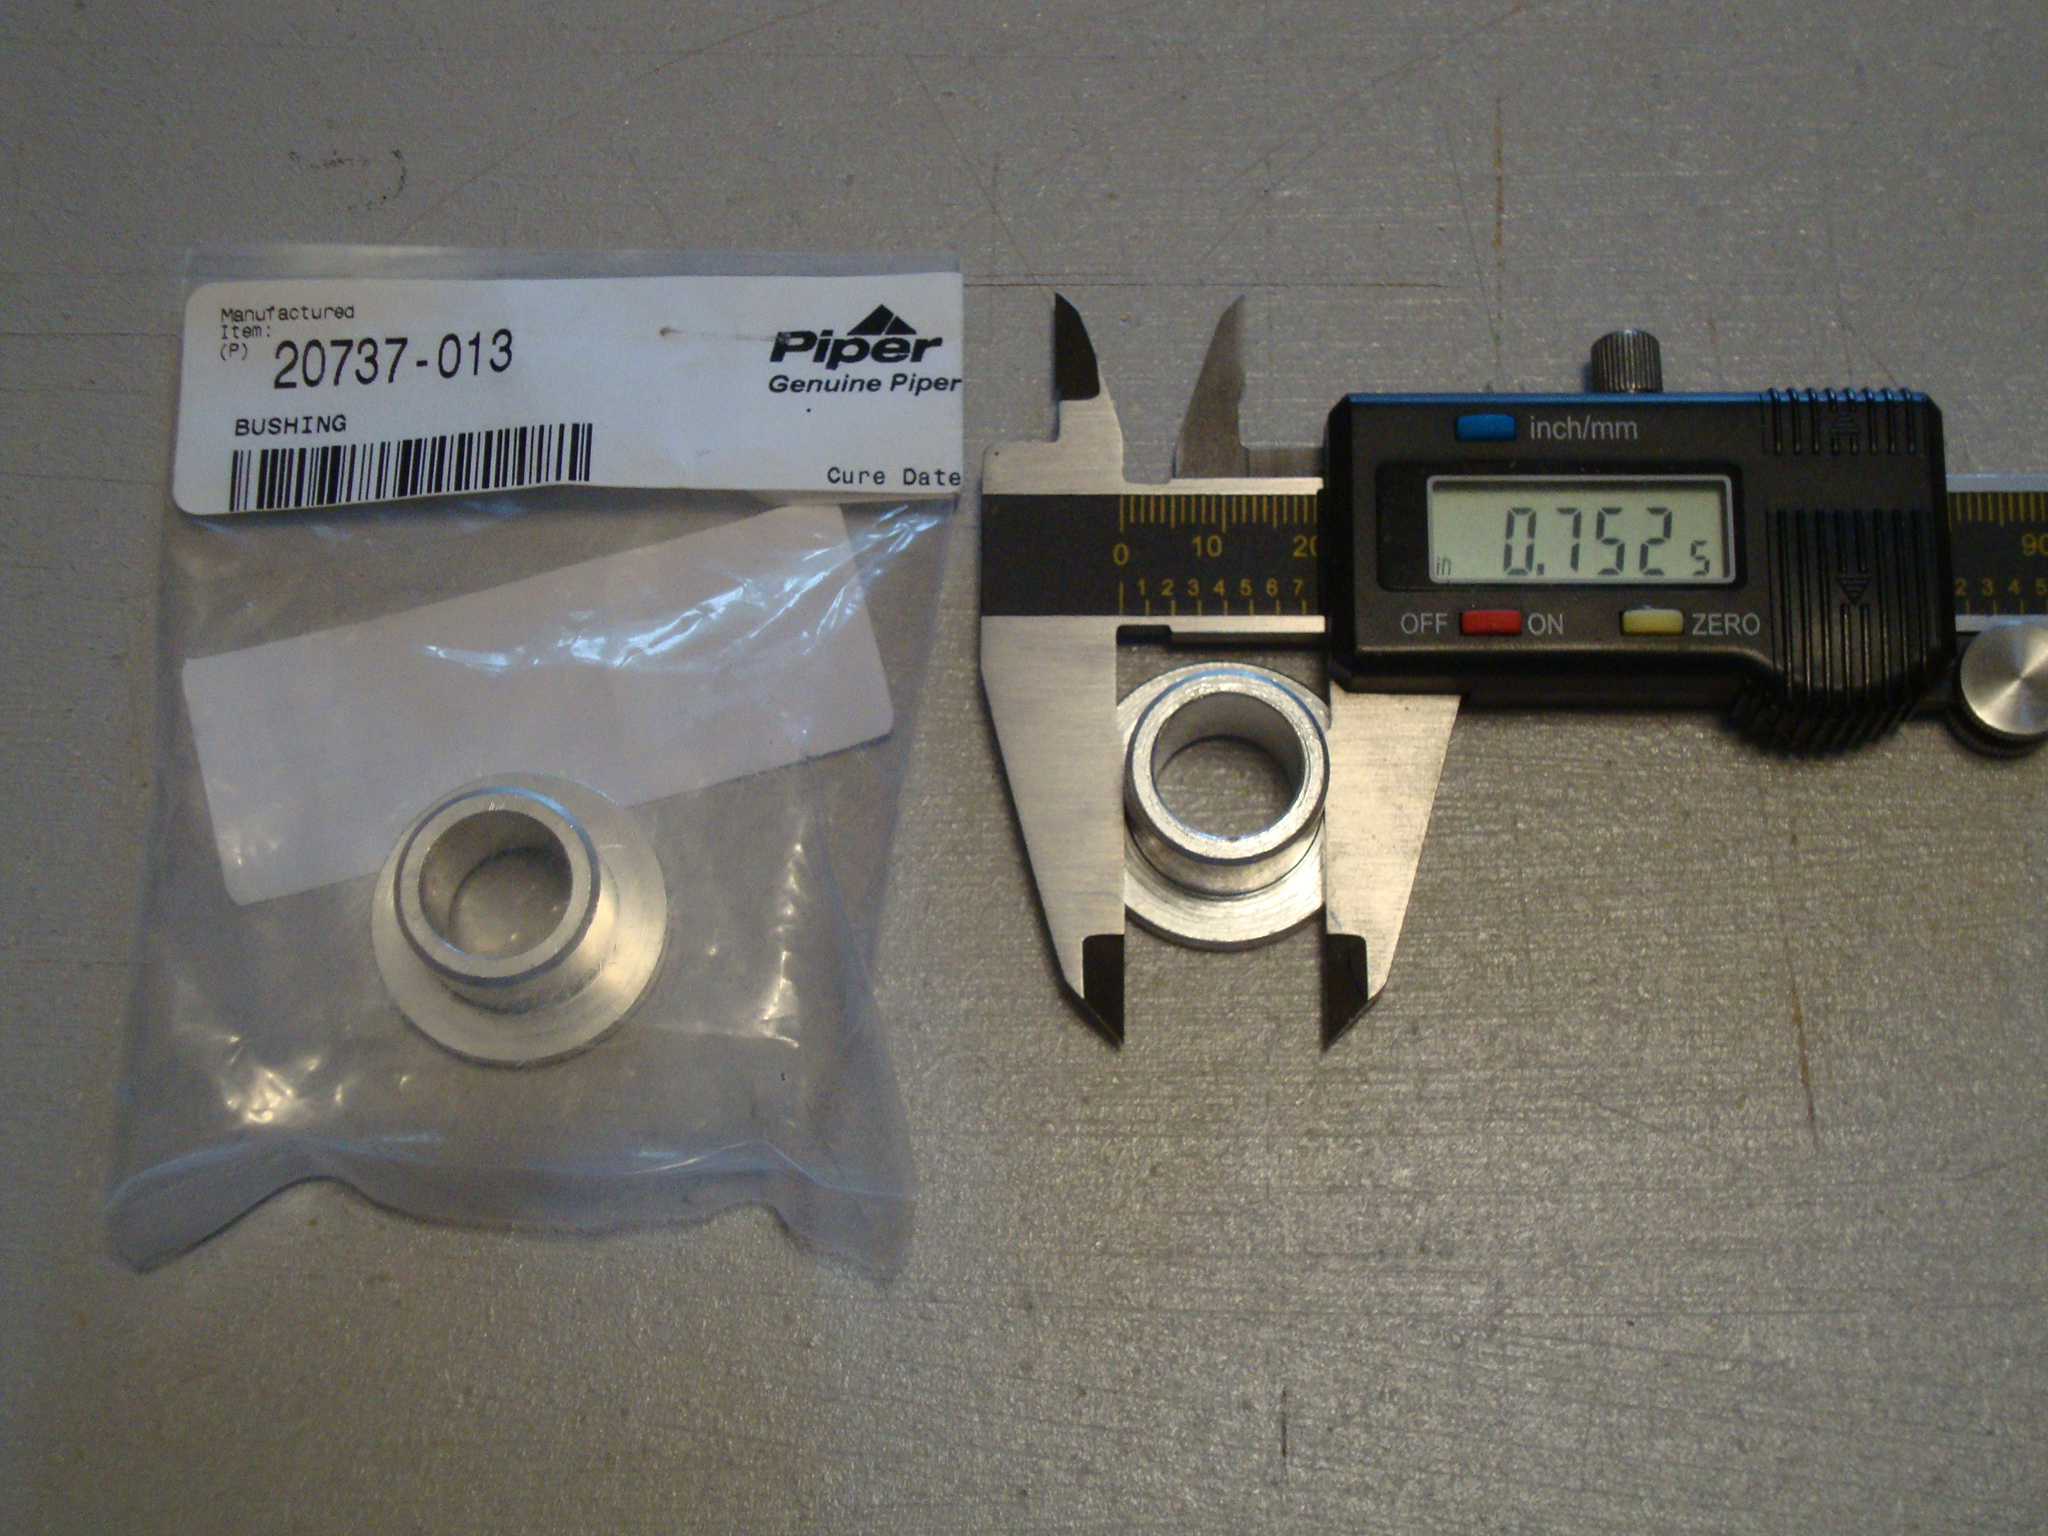 Bushing Diameter Measurement